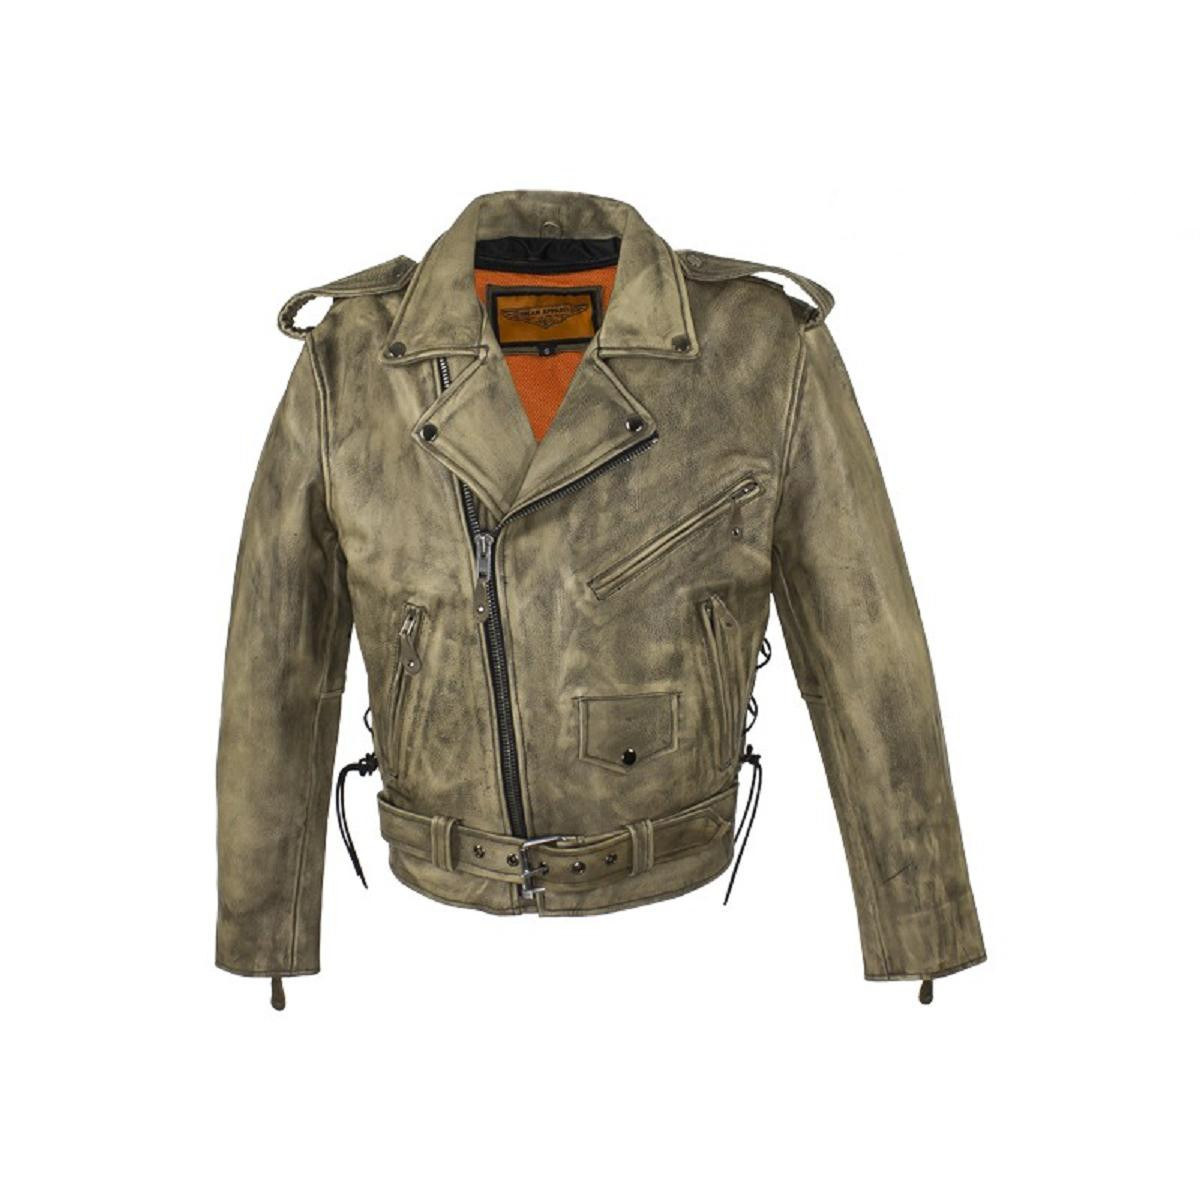 9e0102c269 Mens Distressed Brown Leather Biker Jacket WithLeather Side Laces and  Inside Gun Pockets. Shipping to US addresses this month is $15.